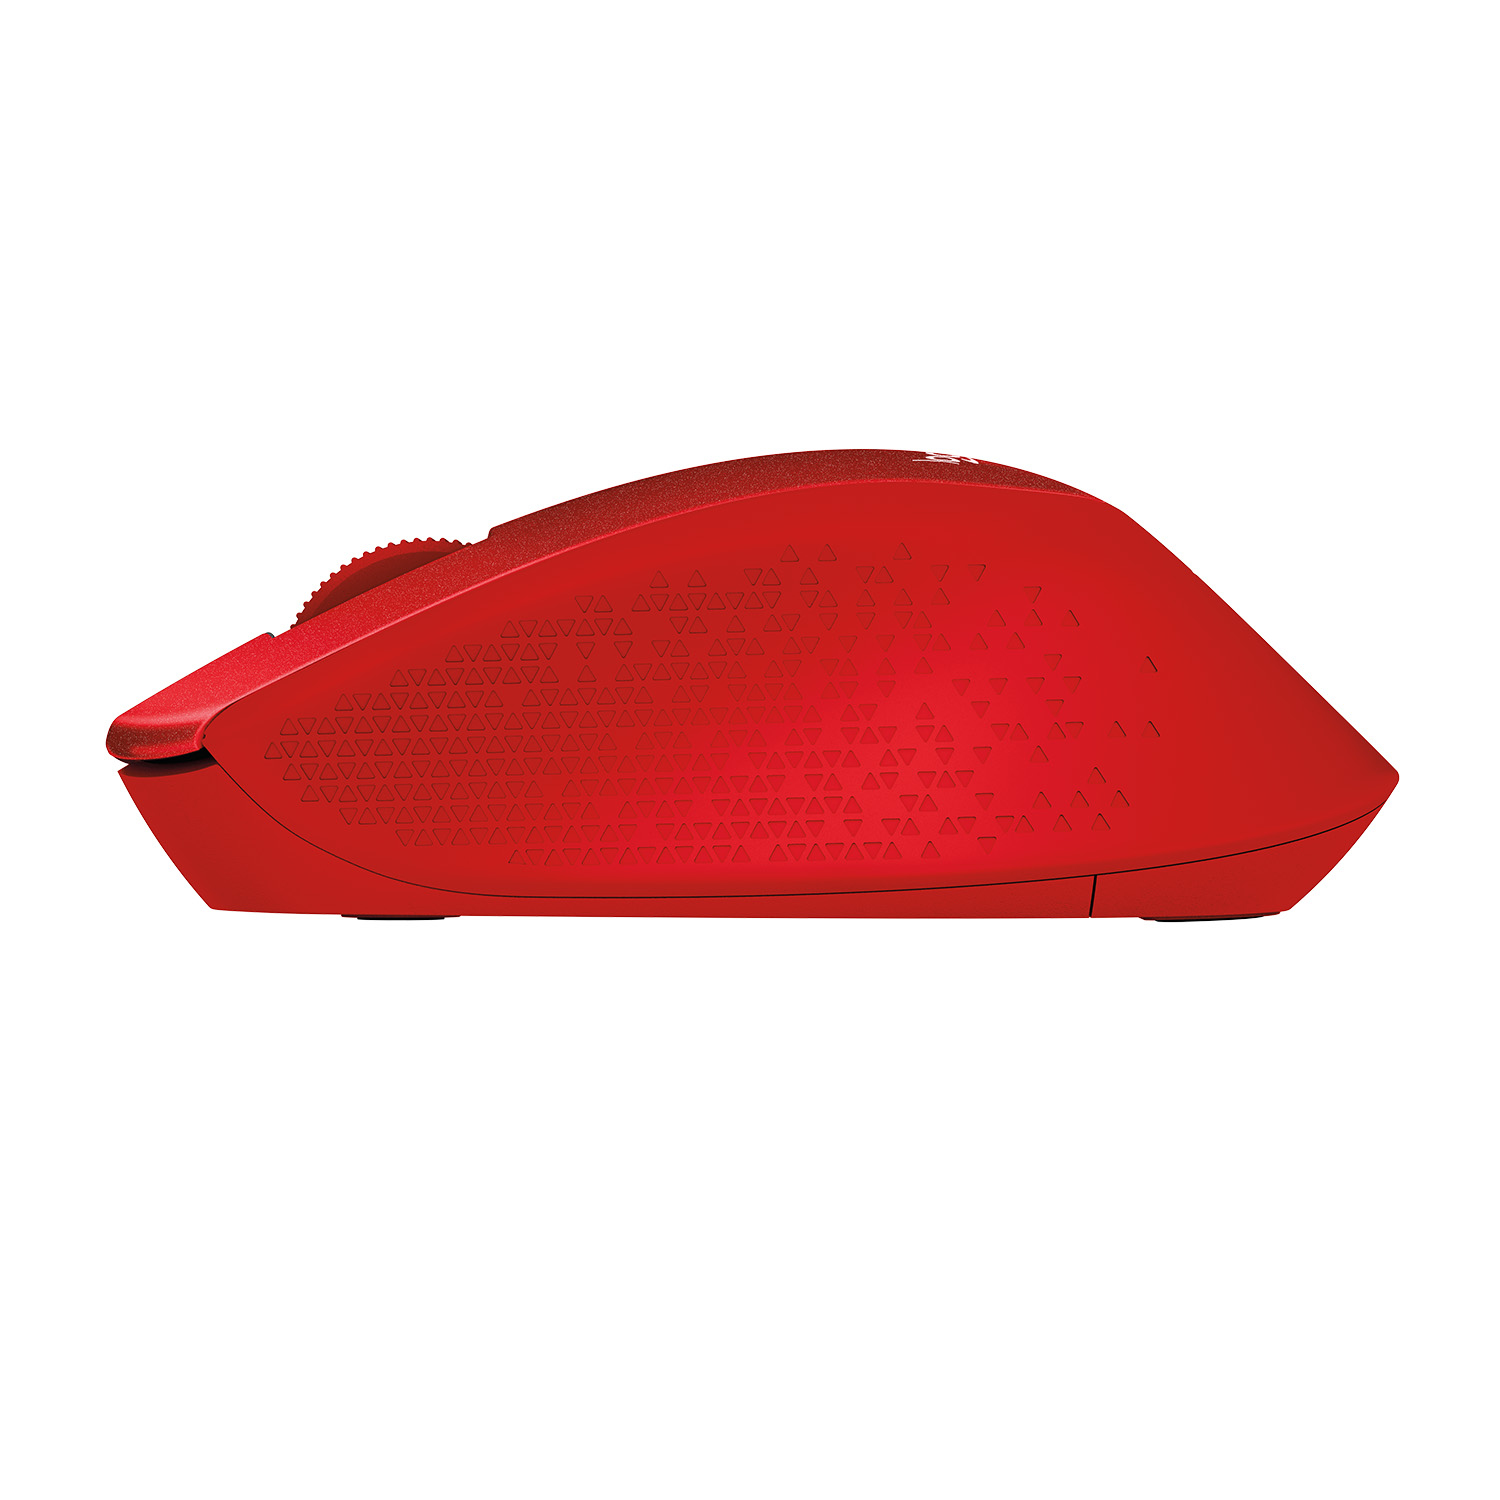 M330 Silent Plus Mouse (3 knoppen, draadloos, rood)